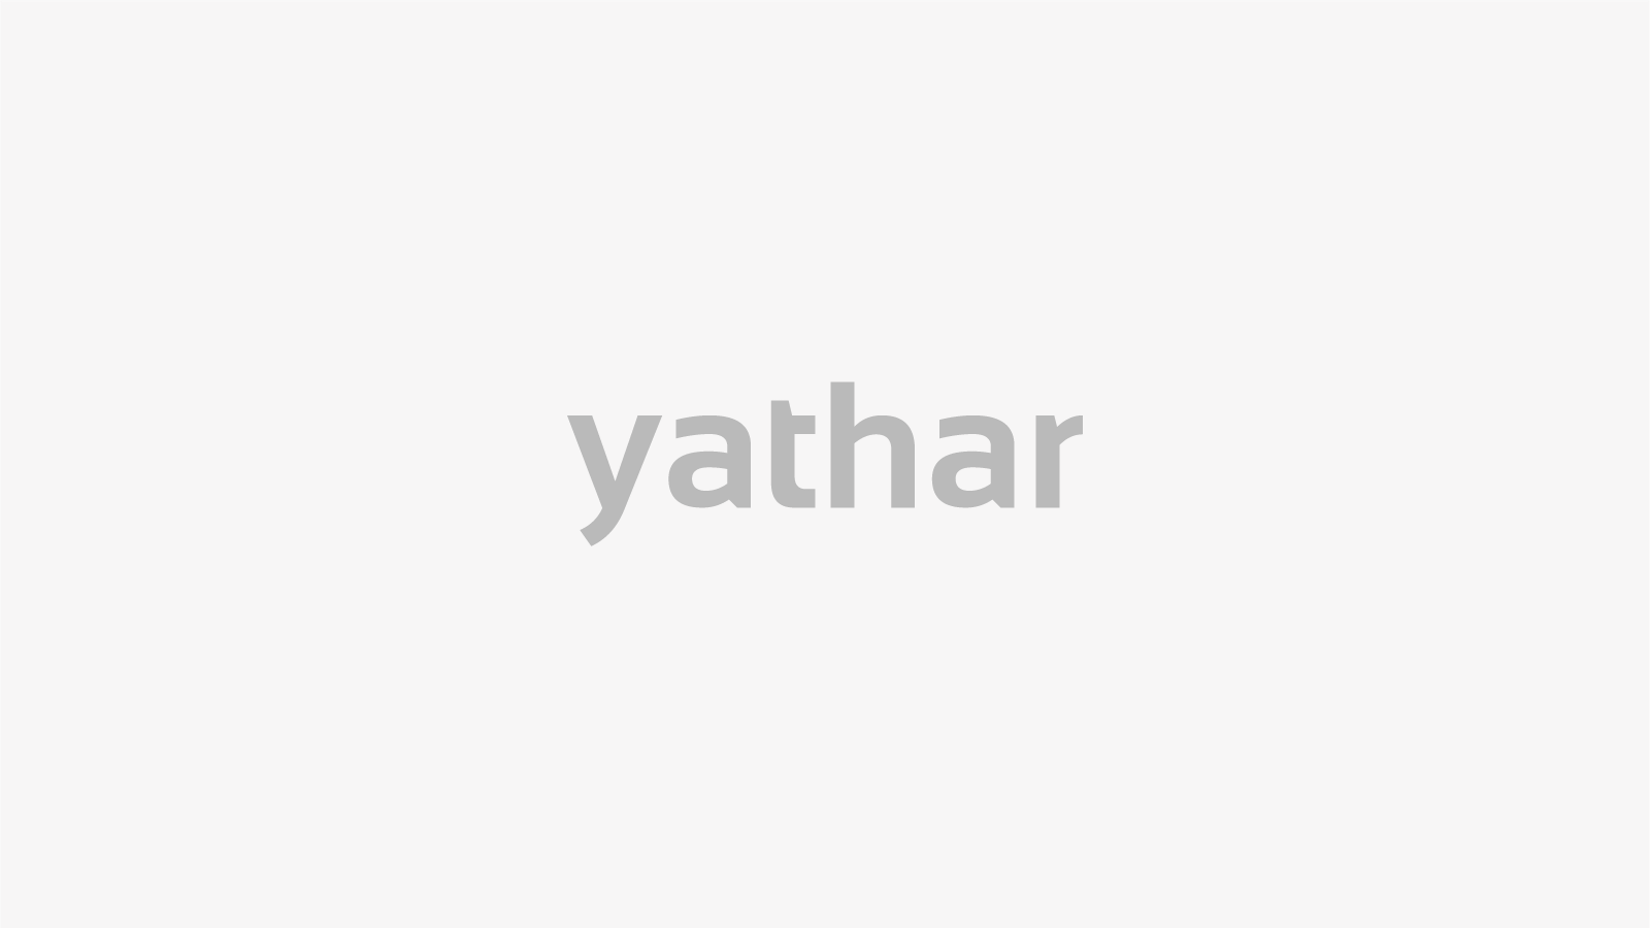 Bangkok Thai Food | yathar